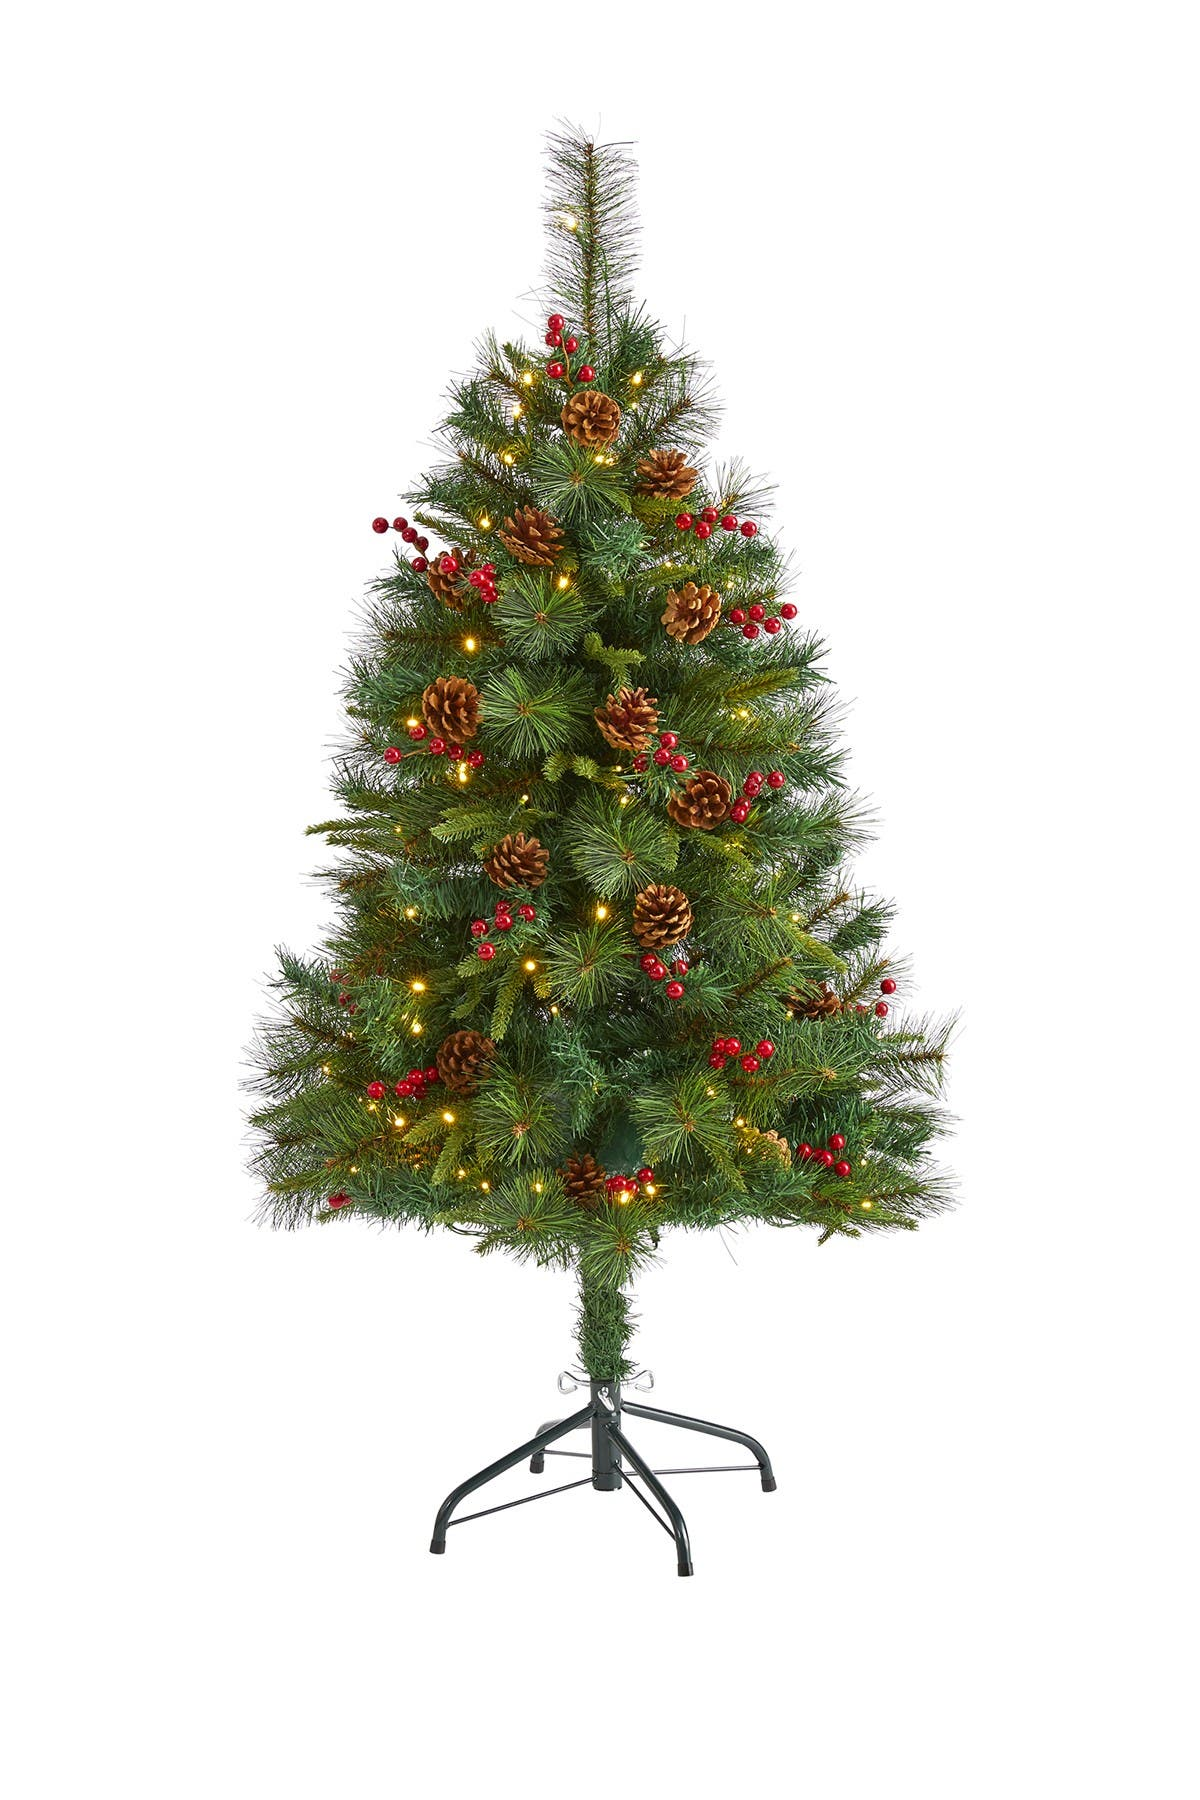 Image of NEARLY NATURAL 4ft. Mixed Pine Artificial Christmas Tree with 100 Clear LED Lights, Pine Cones and Berries